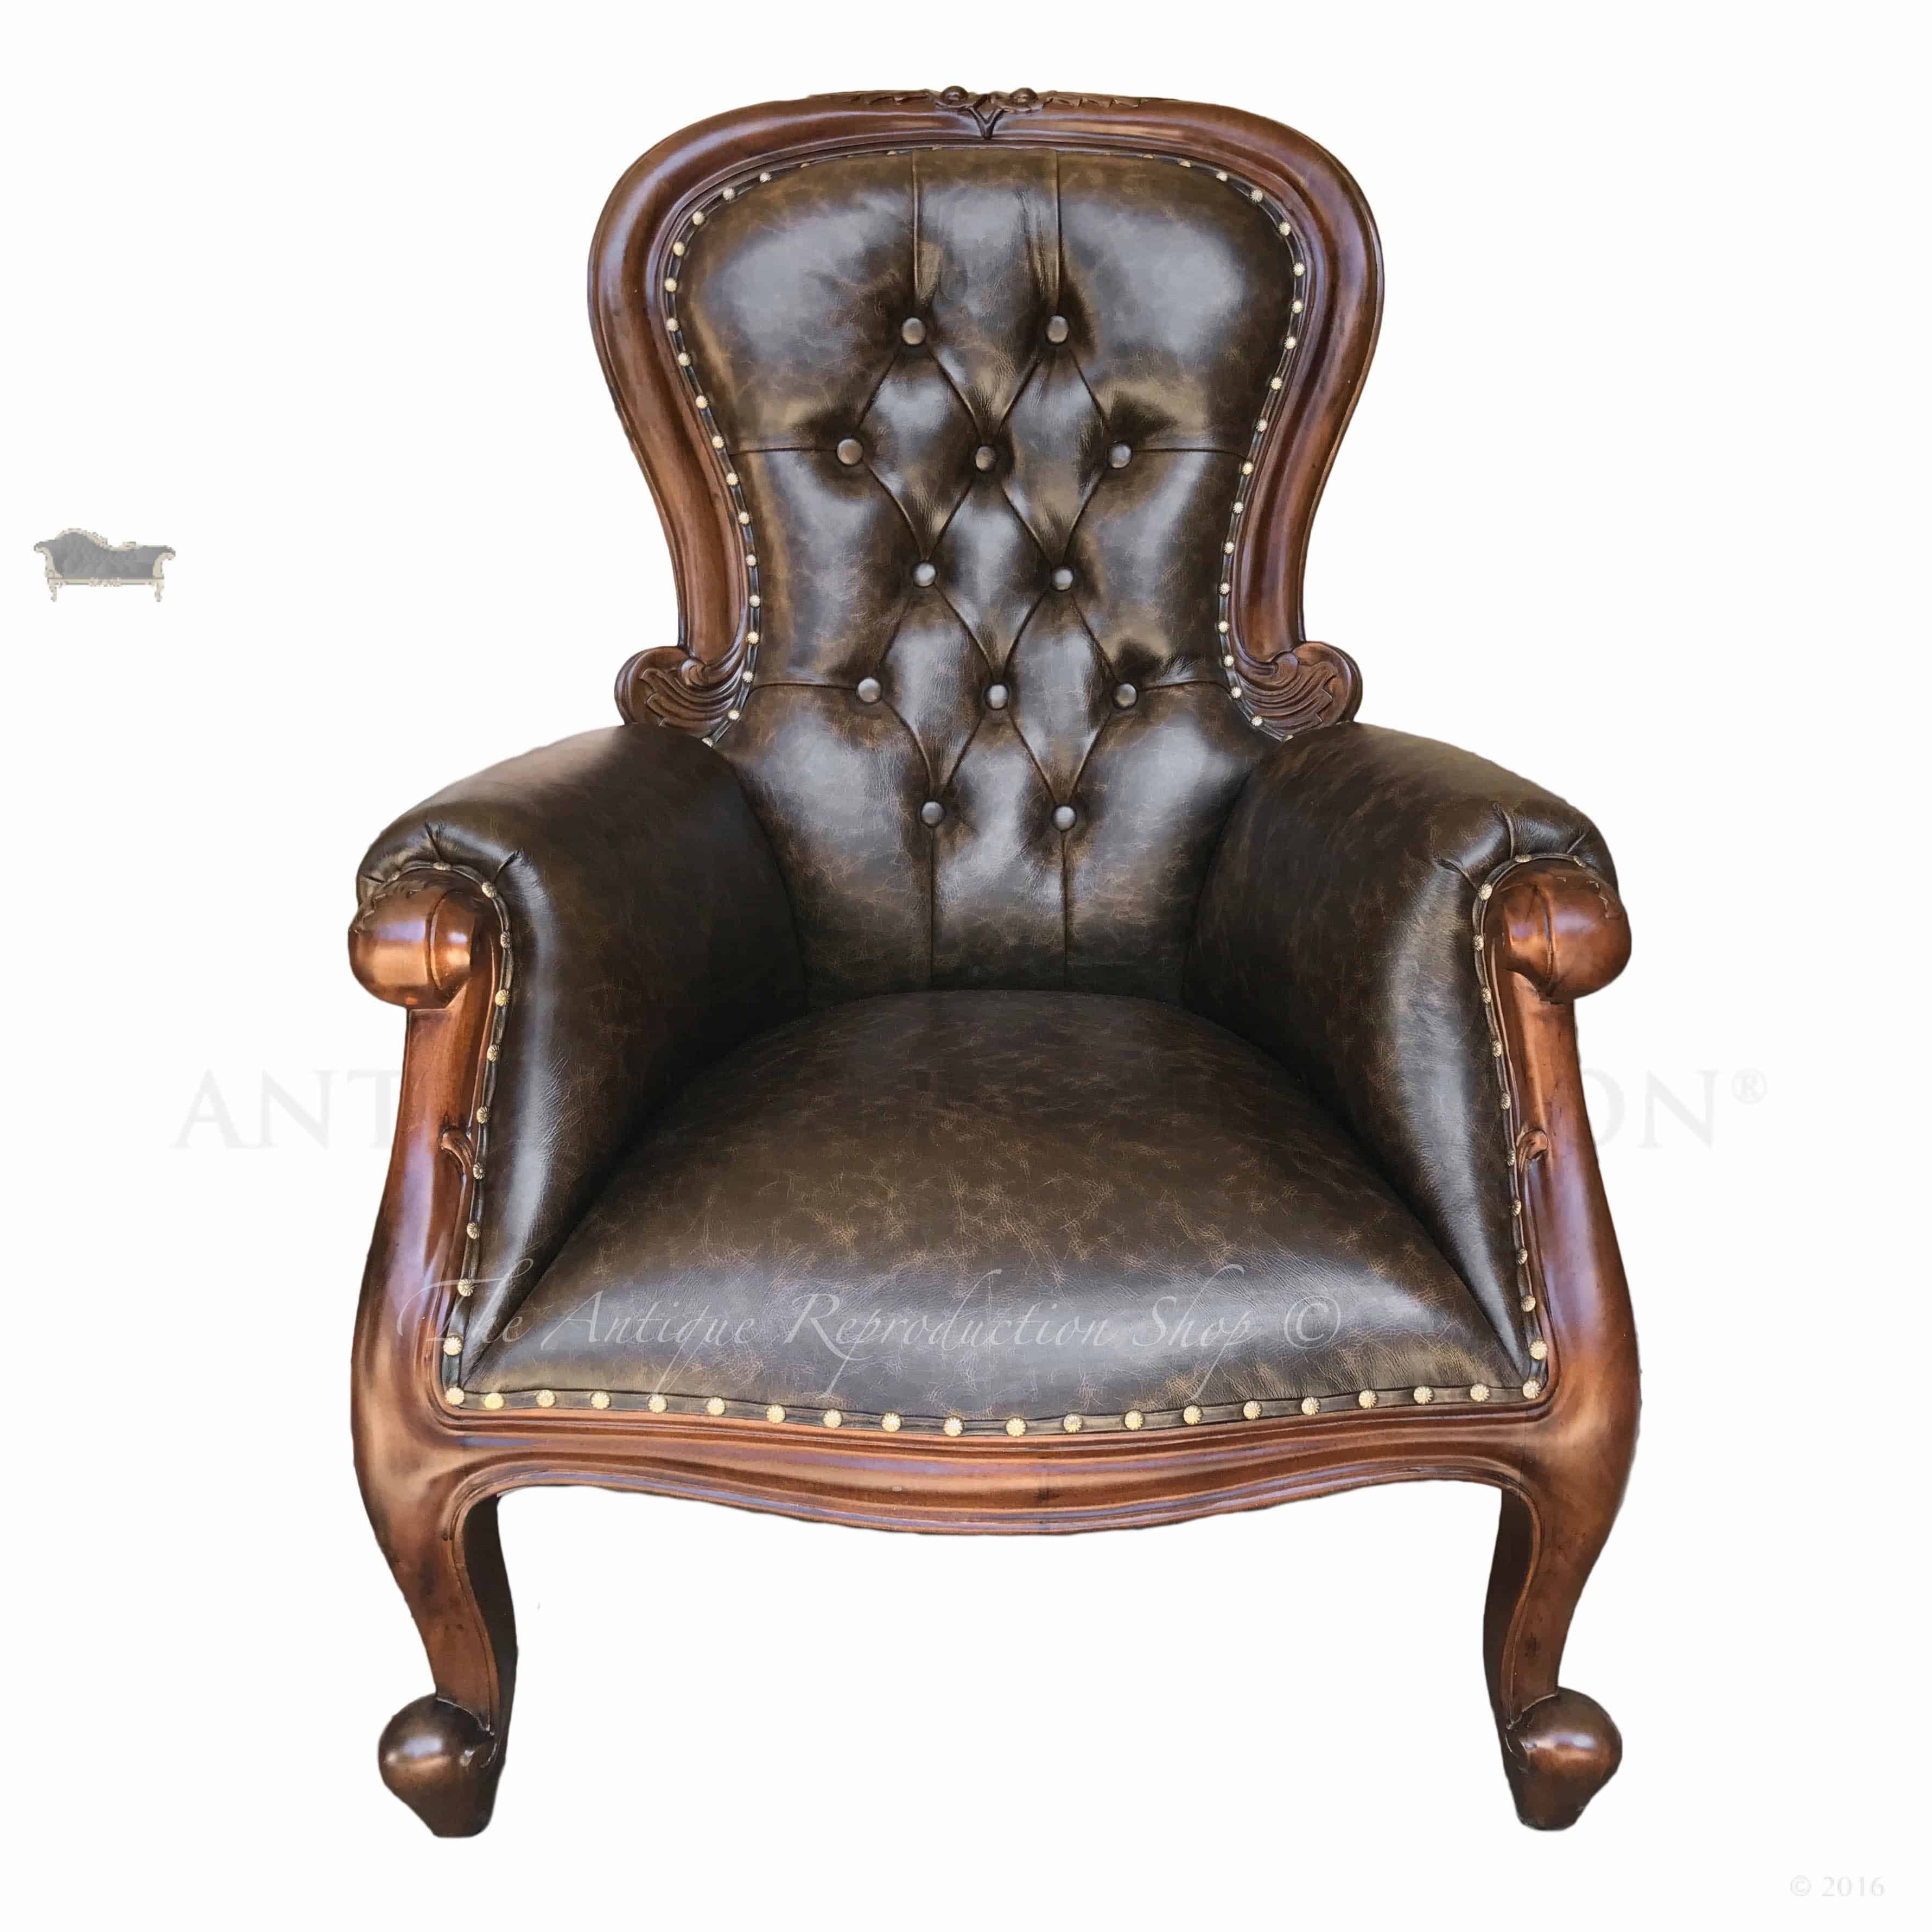 genuine leather chair blue wing back grandfather antique reproduction shop